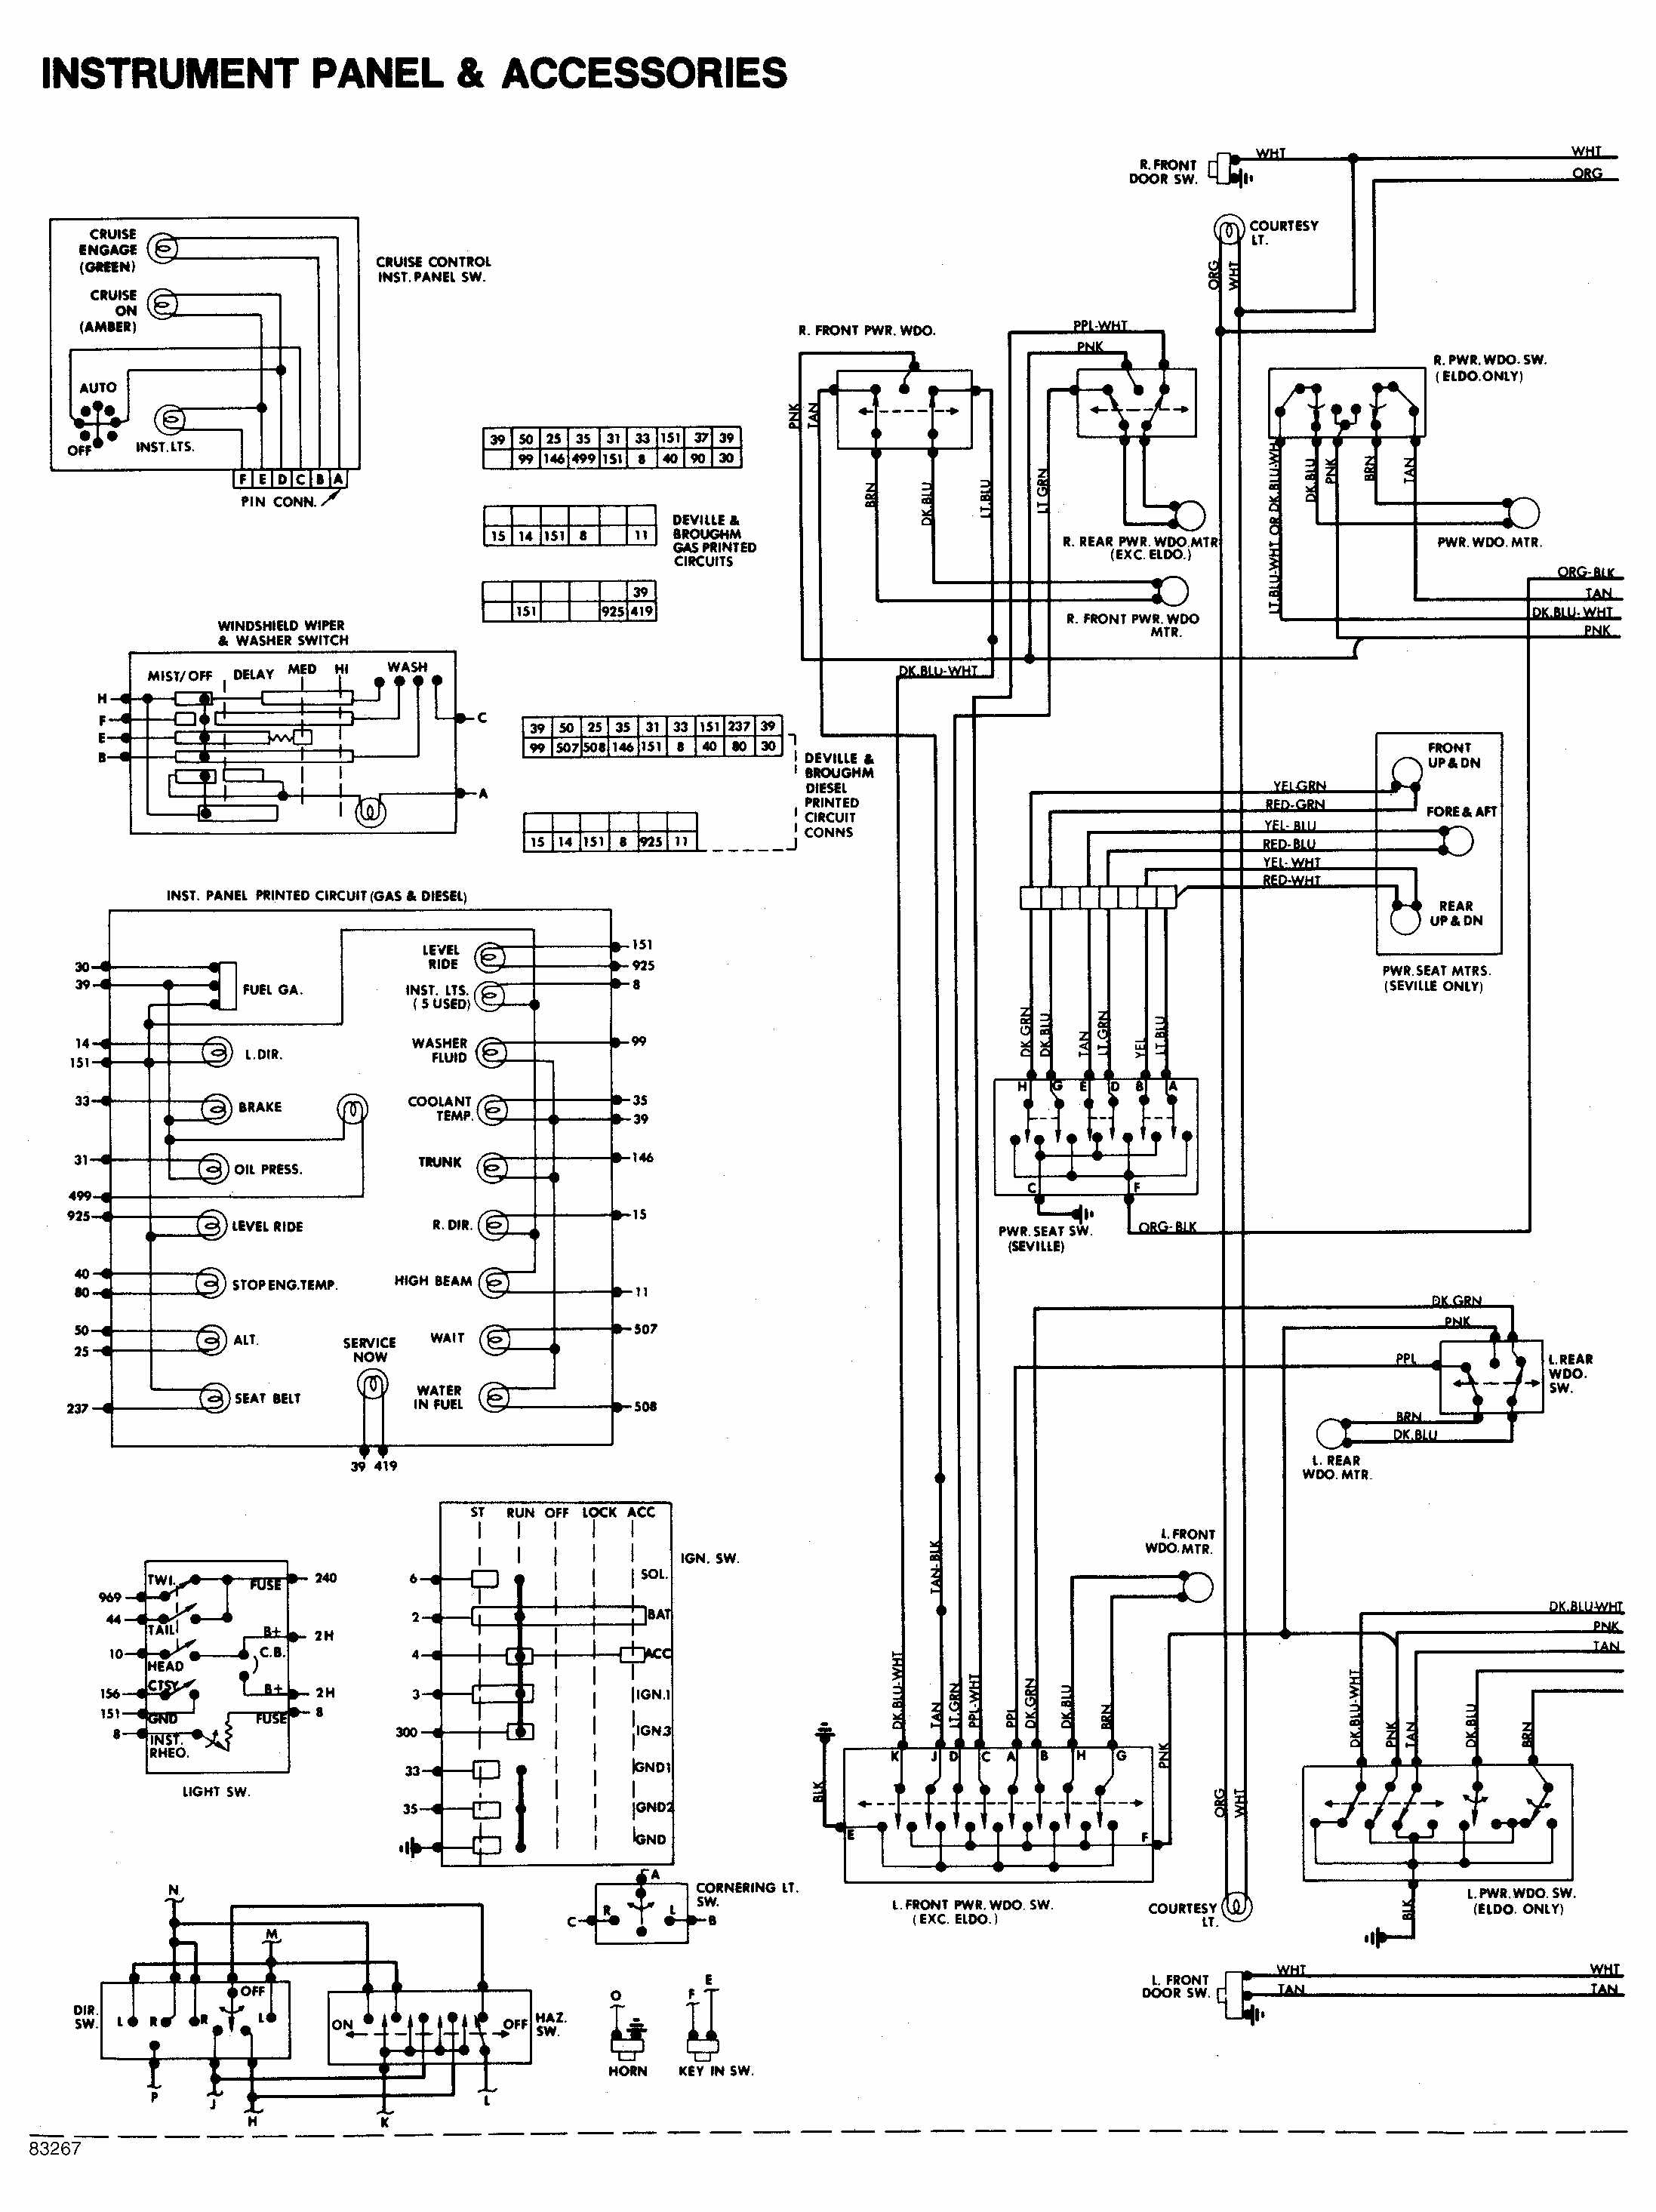 1969 Cadillac Wiring Diagram Posts 1973 Chevrolet Chevy Diagrams Ford